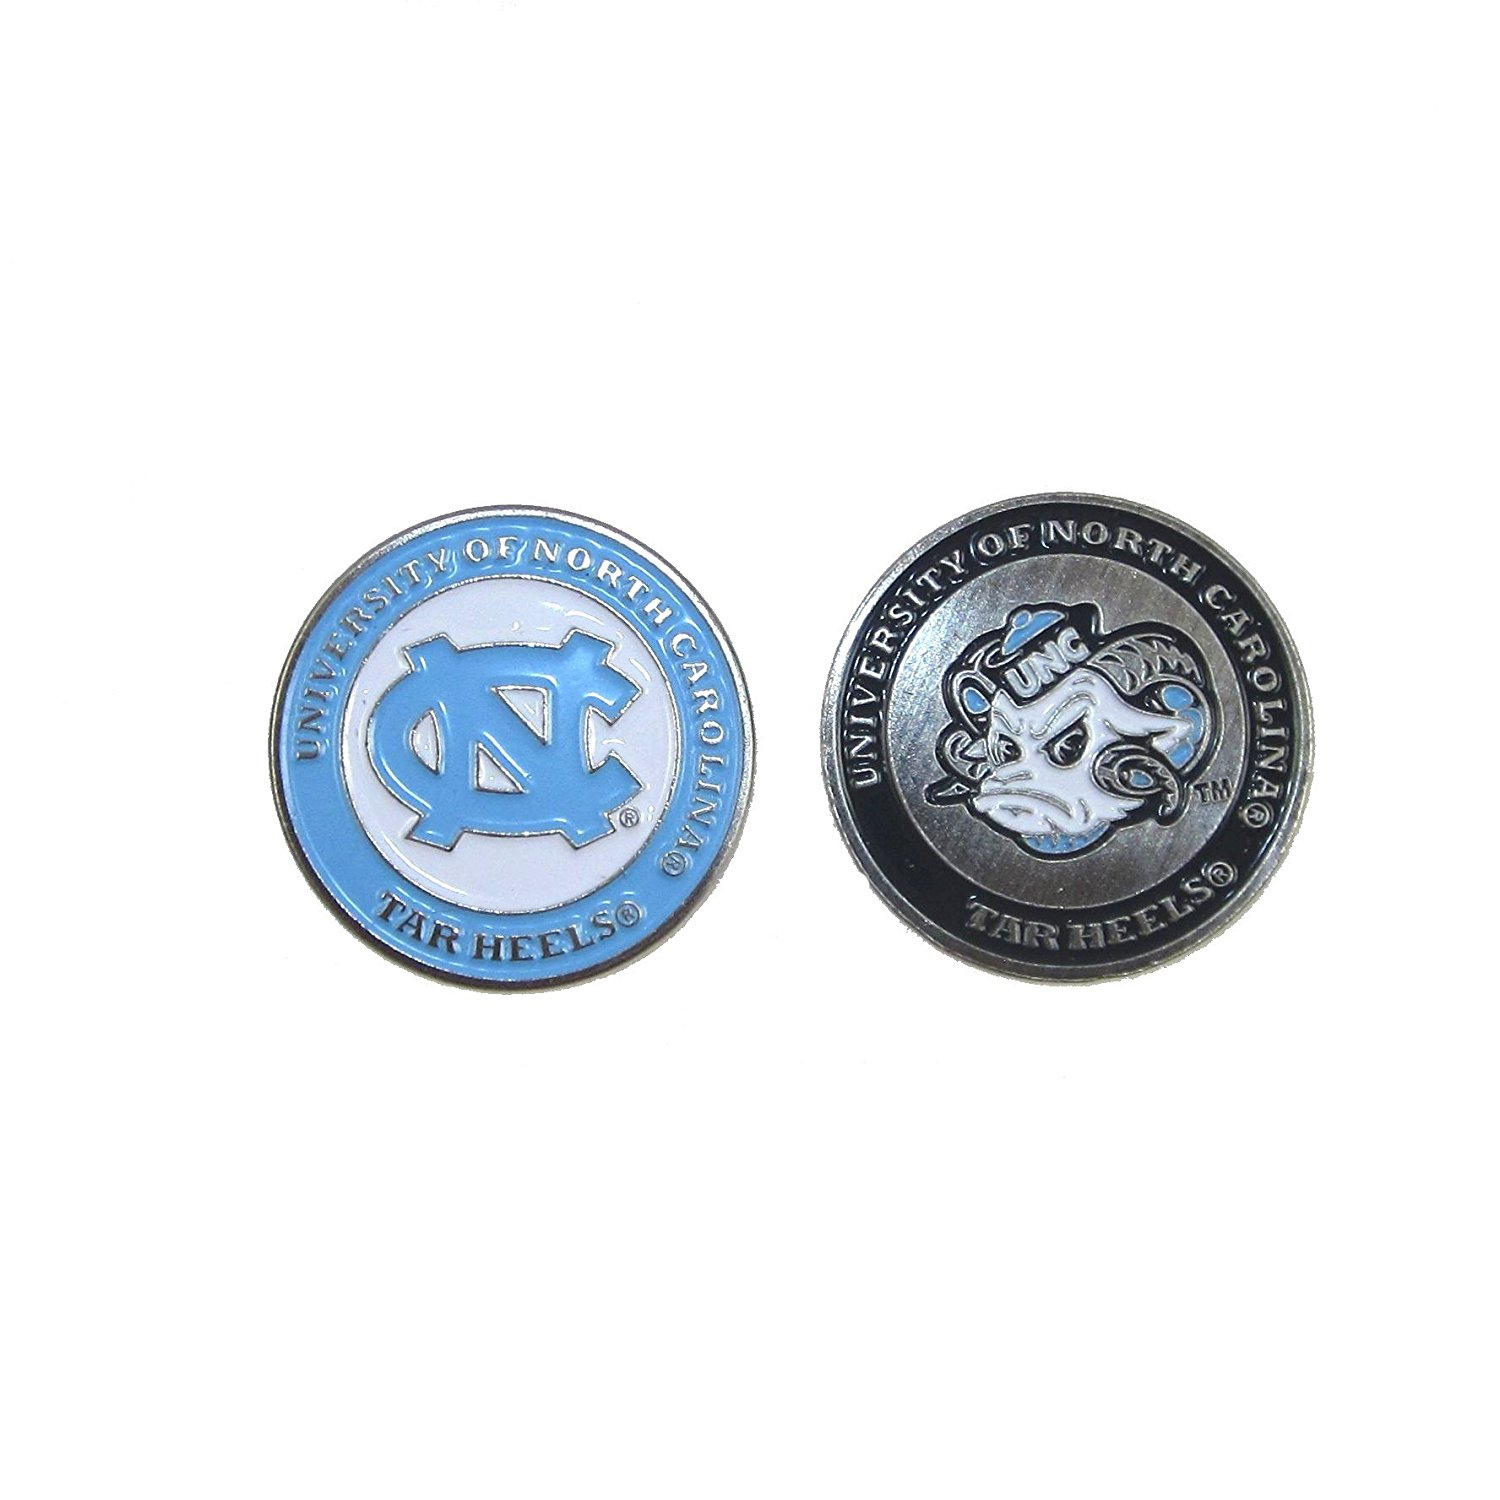 North Carolina Tar Heels Double-Sided UNC Golf Ball Marker, 1 Team Logo Double Sided Ball Marker By Waggle Pro Shop,USA